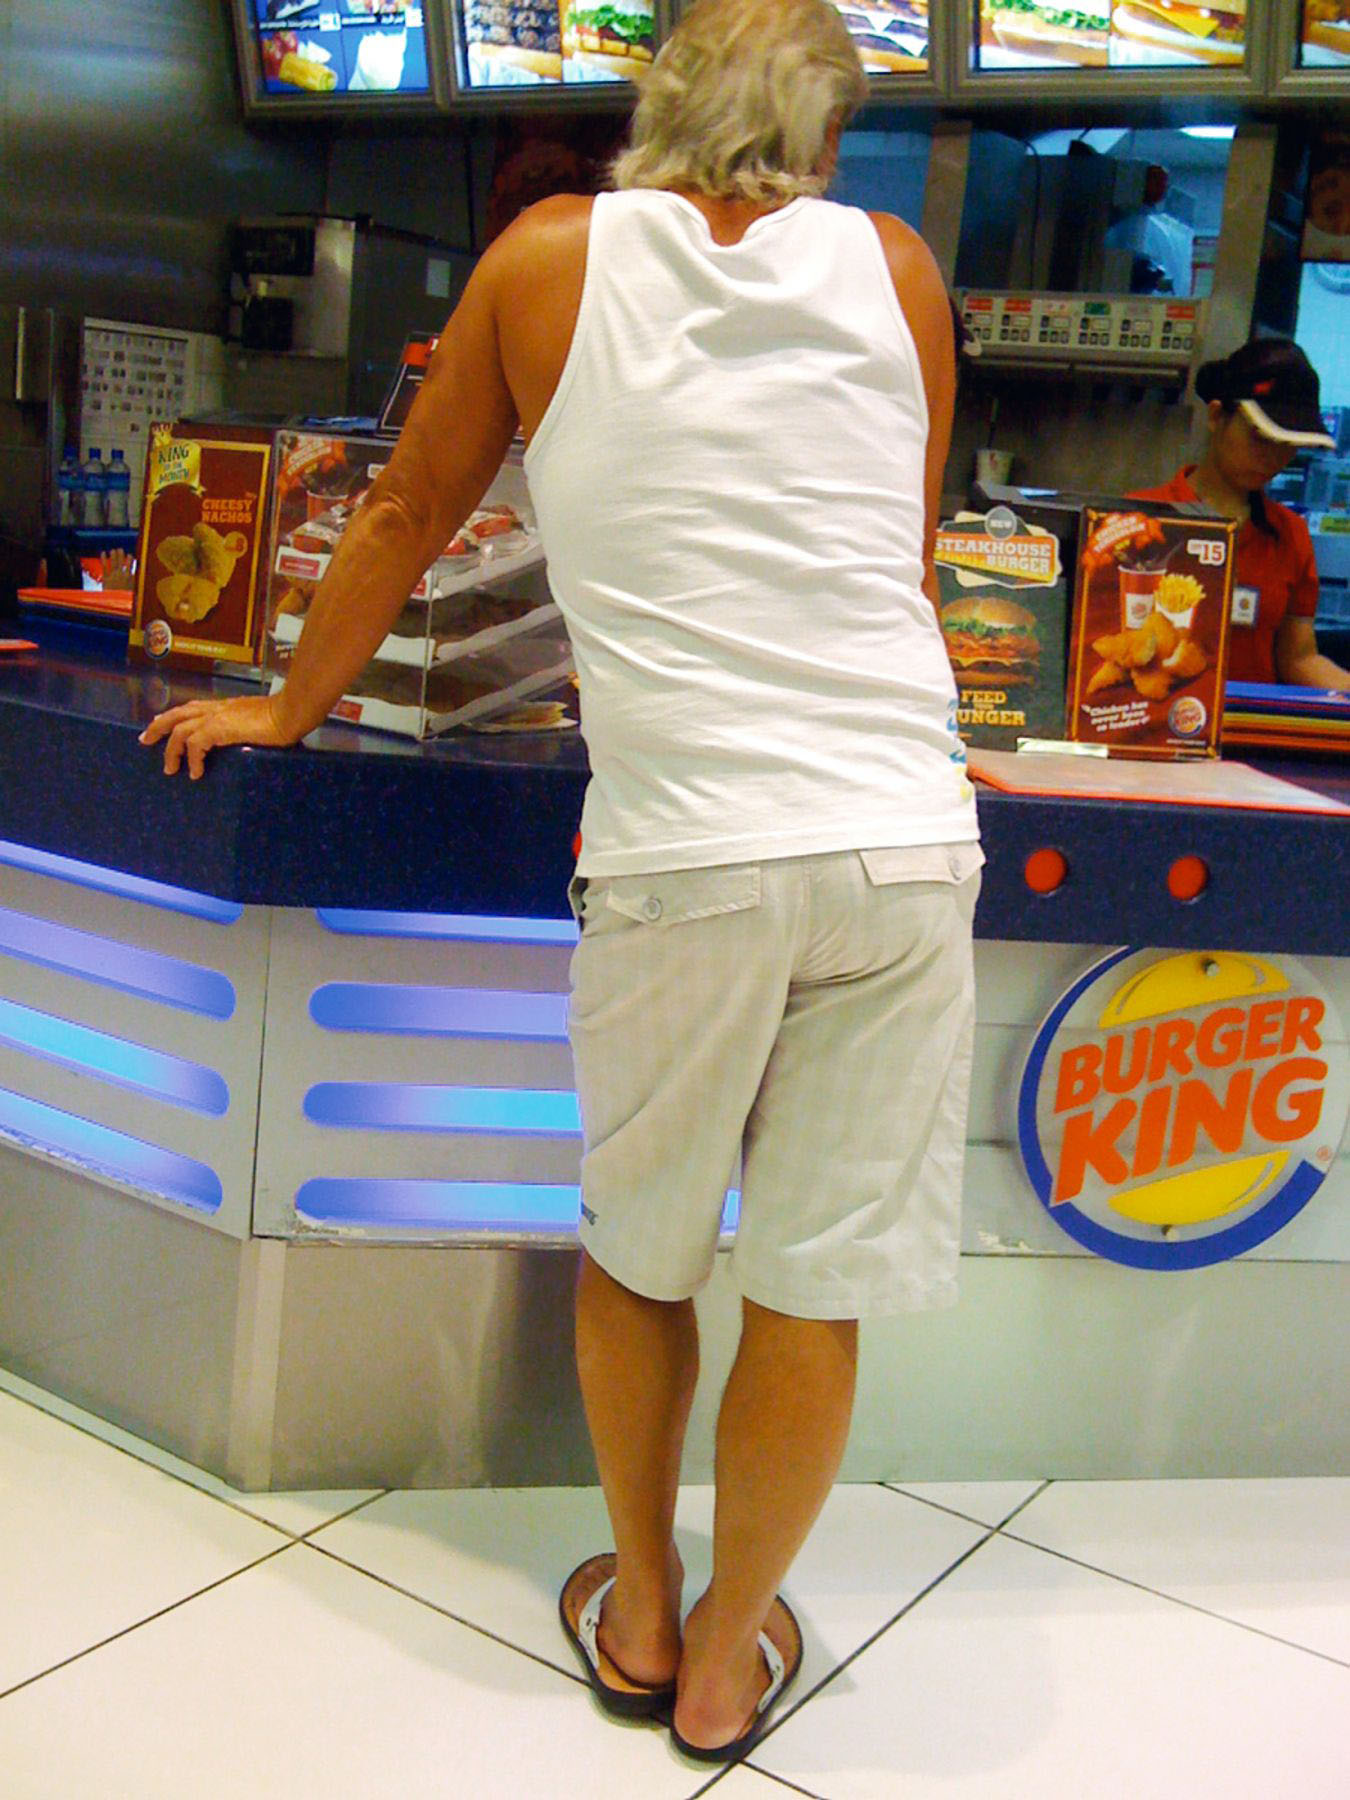 Buger King, West Food Court, Mall of the Emirates, 2008-2009